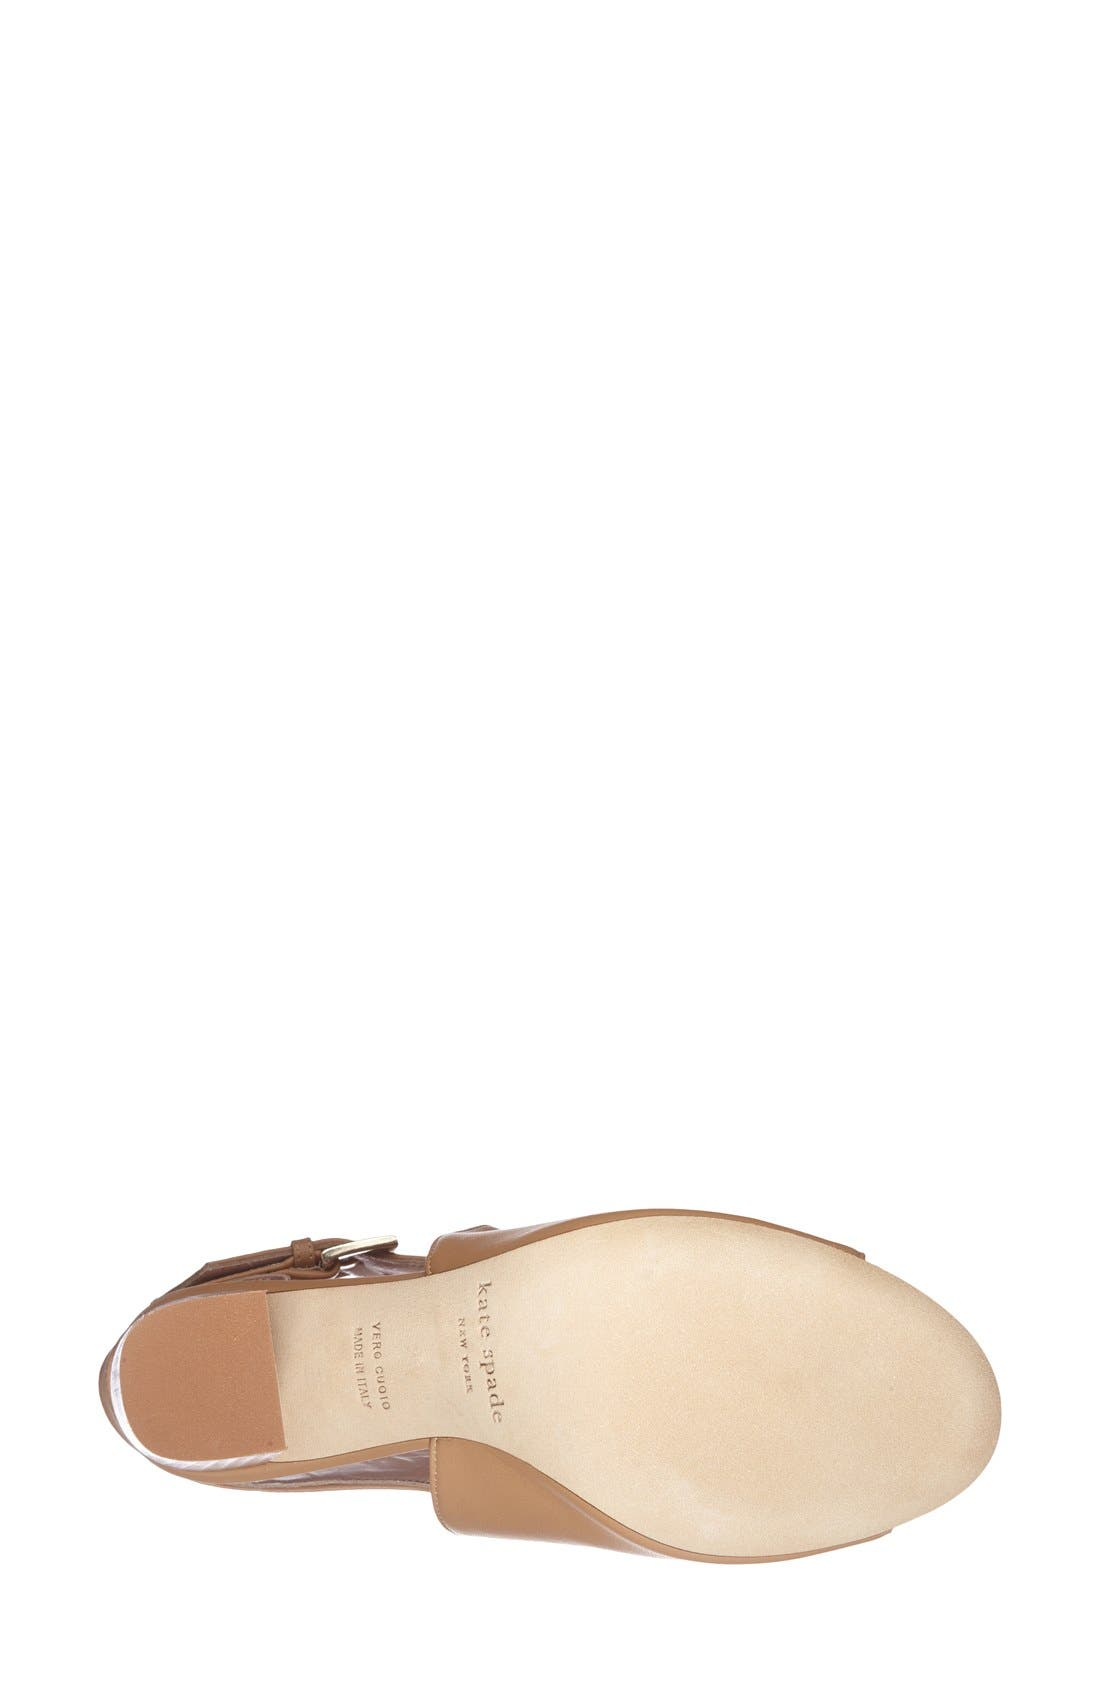 Alternate Image 4  - kate spade new york 'ingrada' slingback sandal (Women)